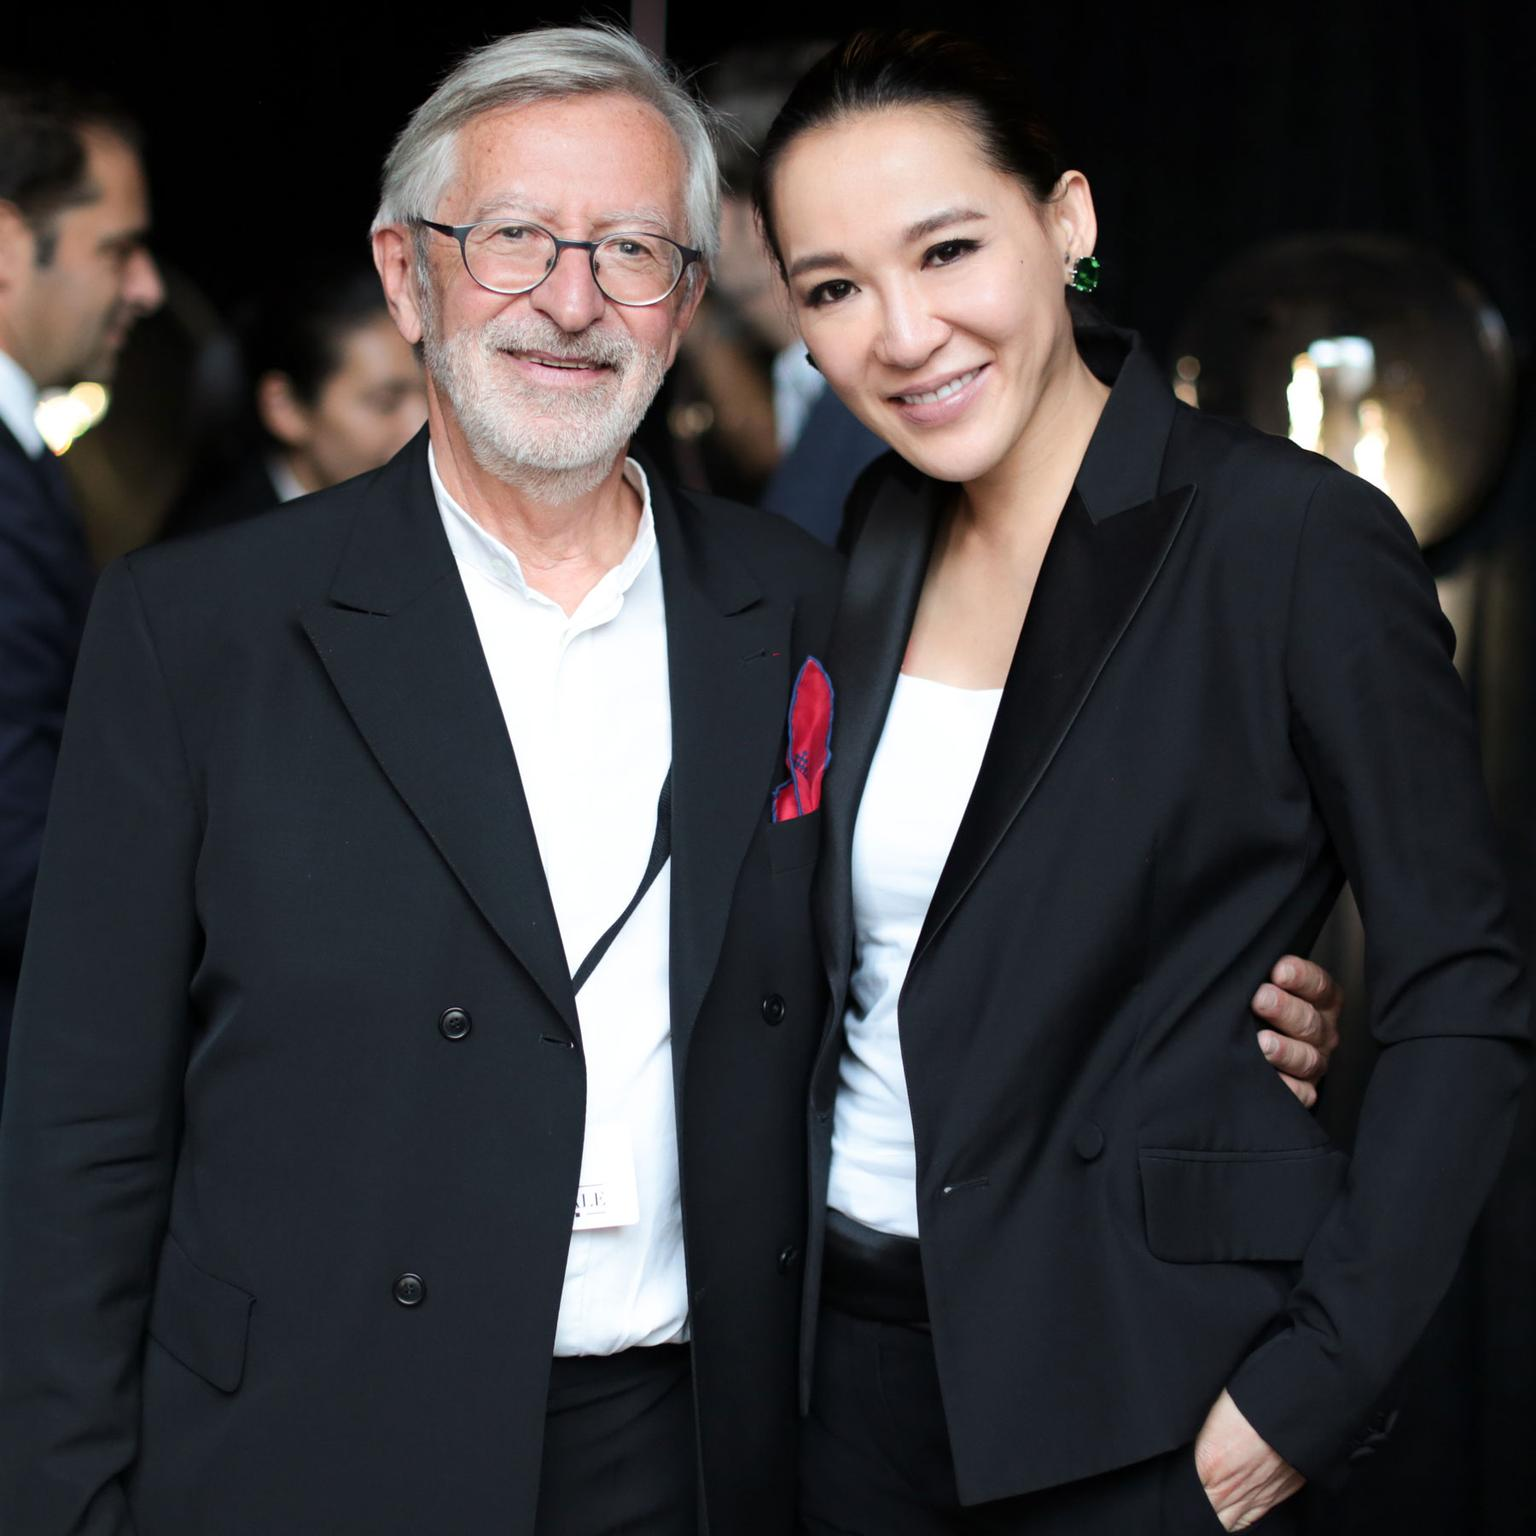 Cindy Chao with Dominique Chevalier